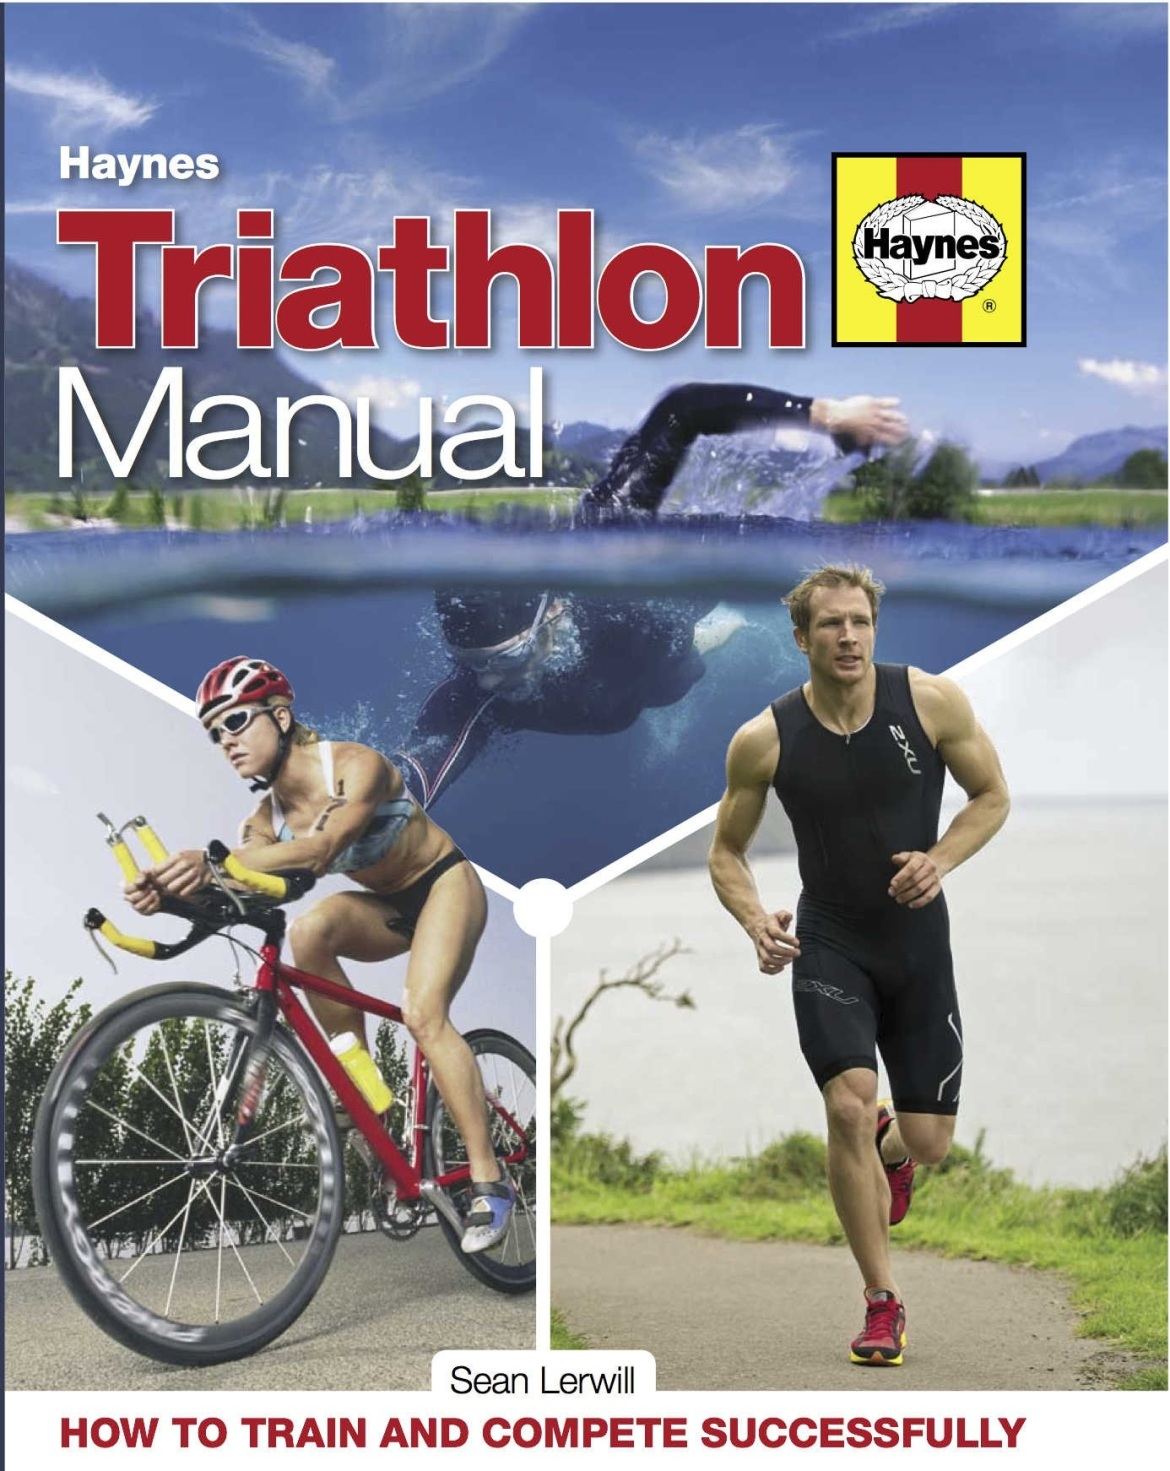 Haynes Triathlon Manual